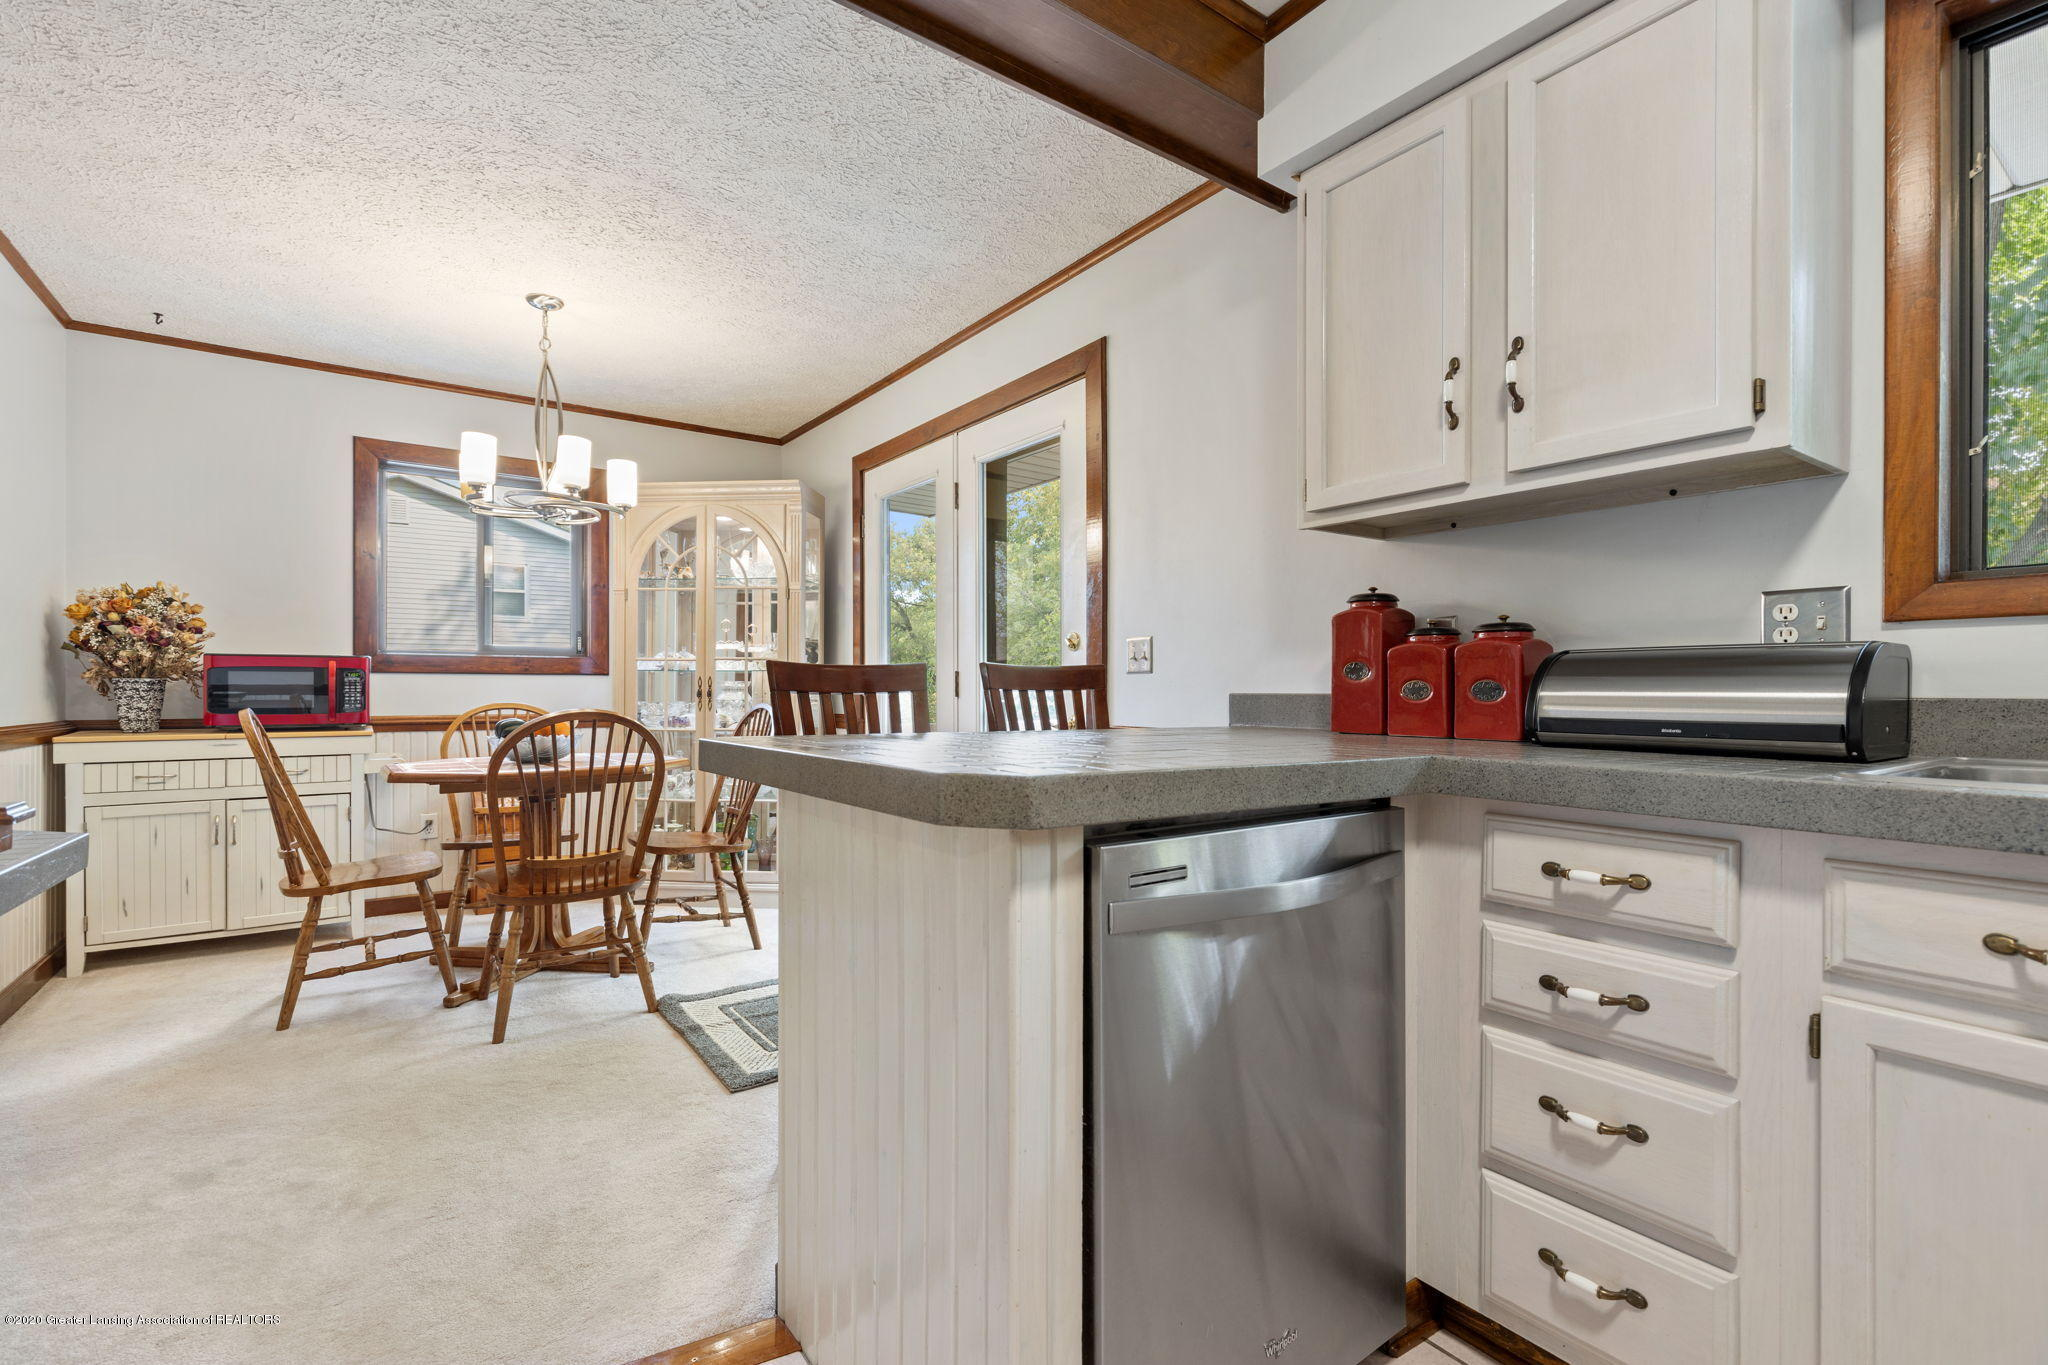 617 Green St - 29-web-or-mls-1P6A9504 - 13